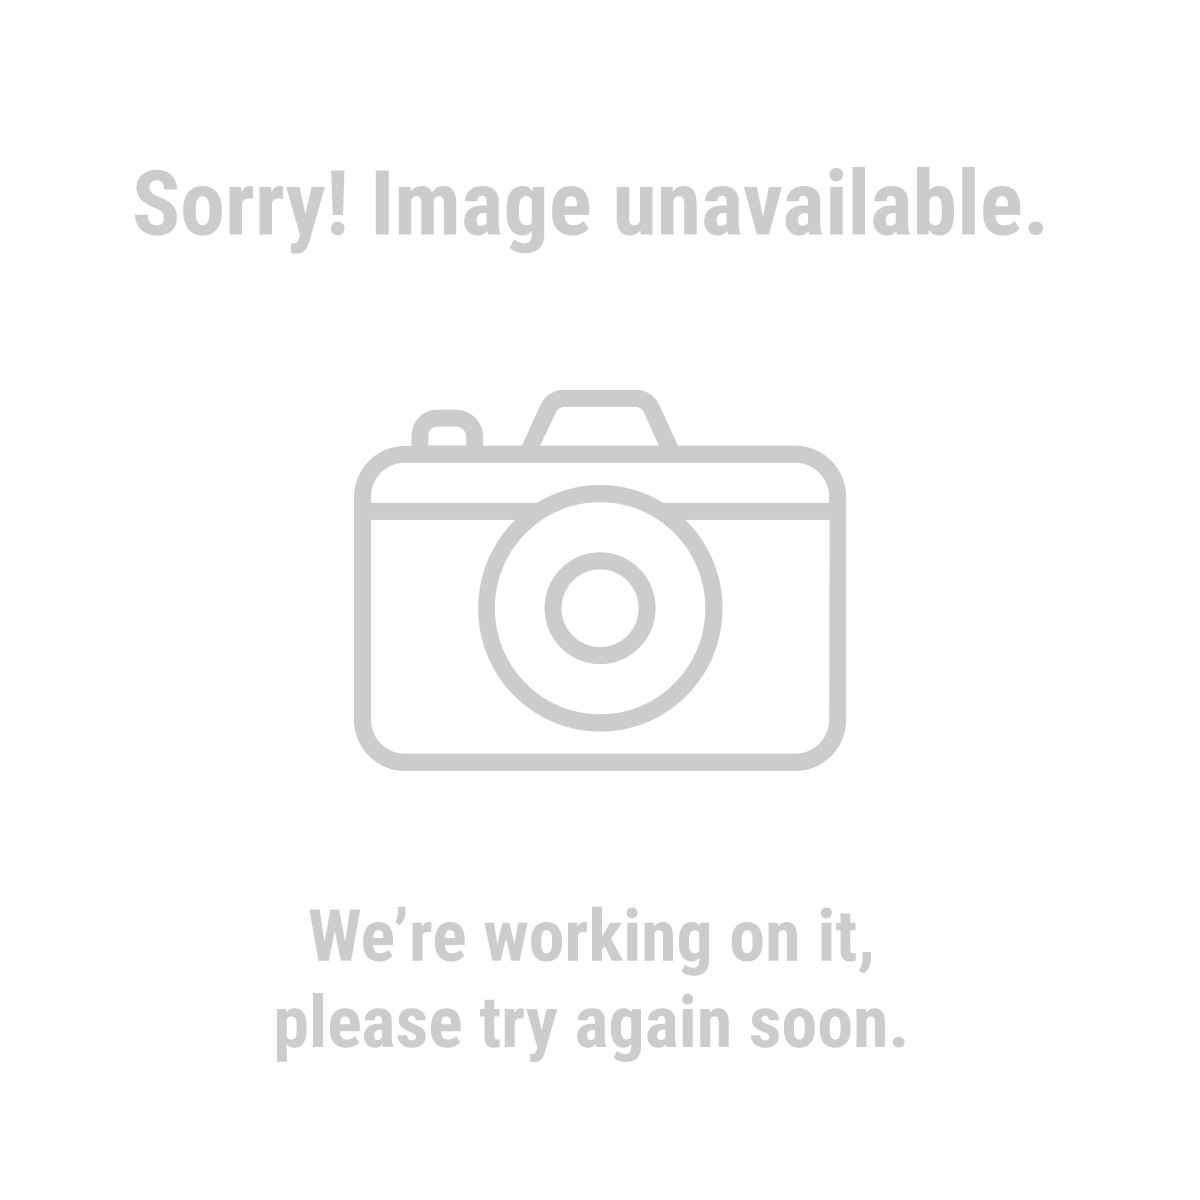 Chicago Electric Power Tools 61882 1-1/8 in. 10 Amp Heavy Duty SDS Variable Speed Rotary Hammer